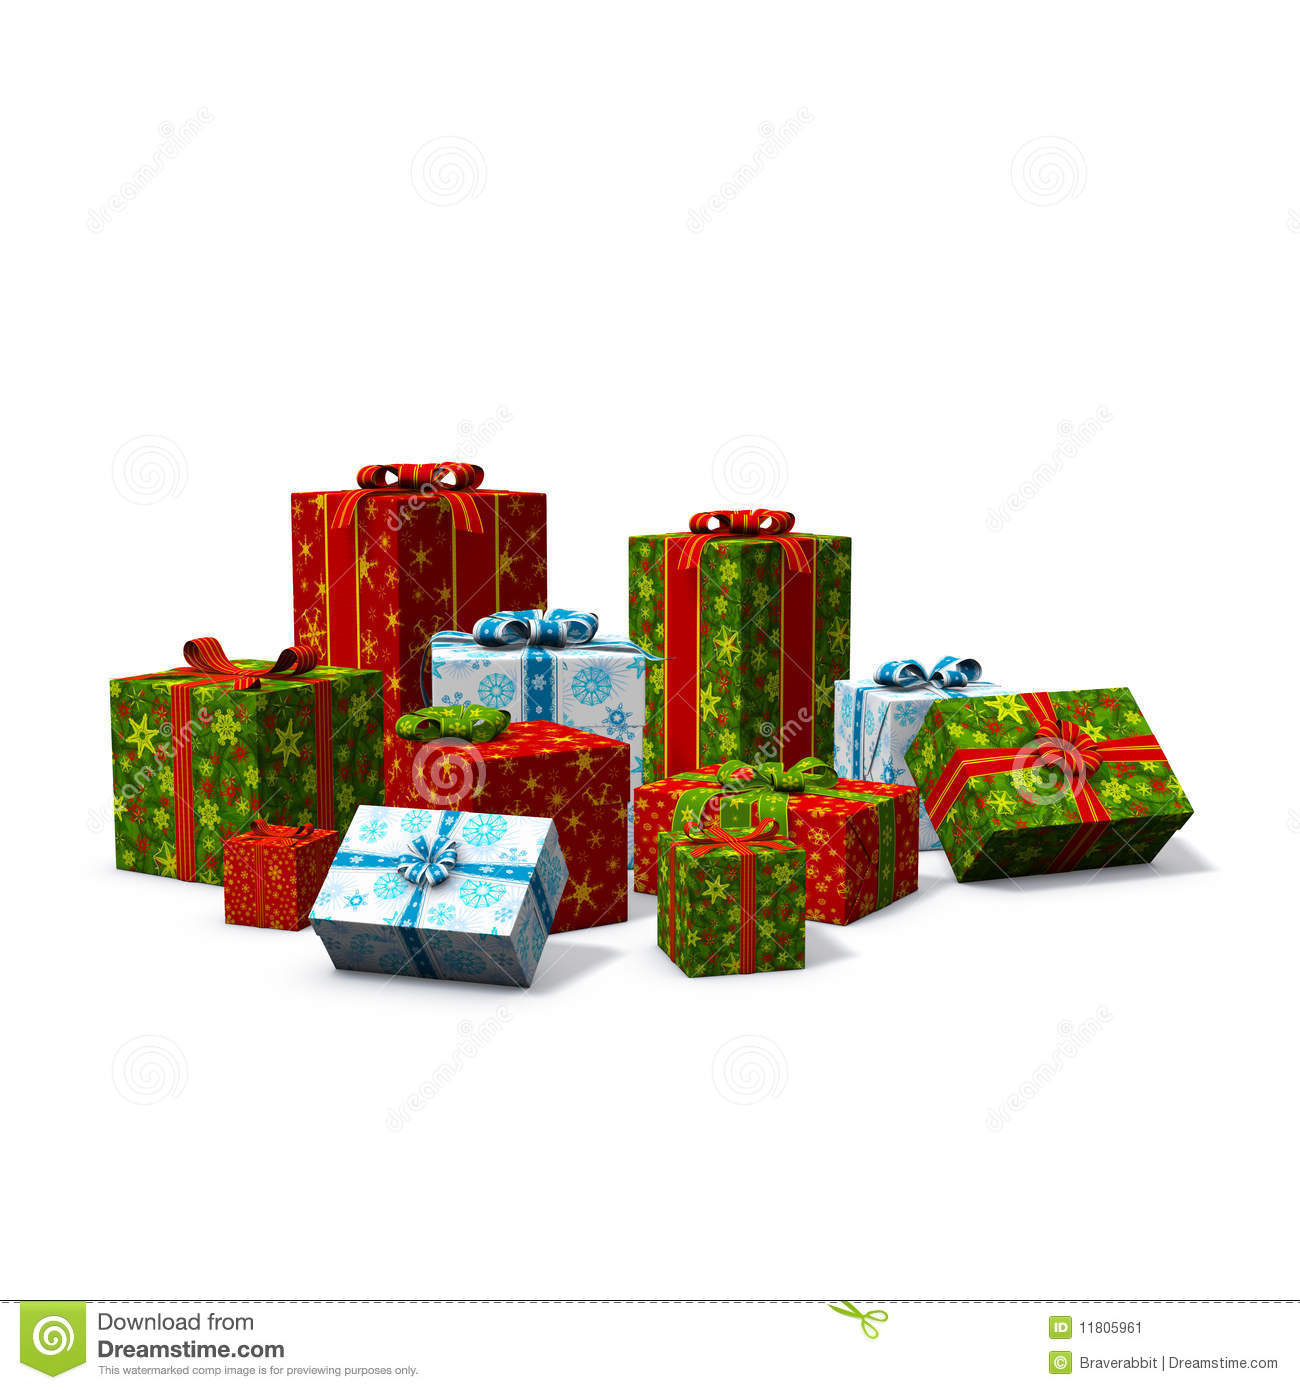 Multicolored Pile Of Christmas Presents Stock Image - Image: 11805961